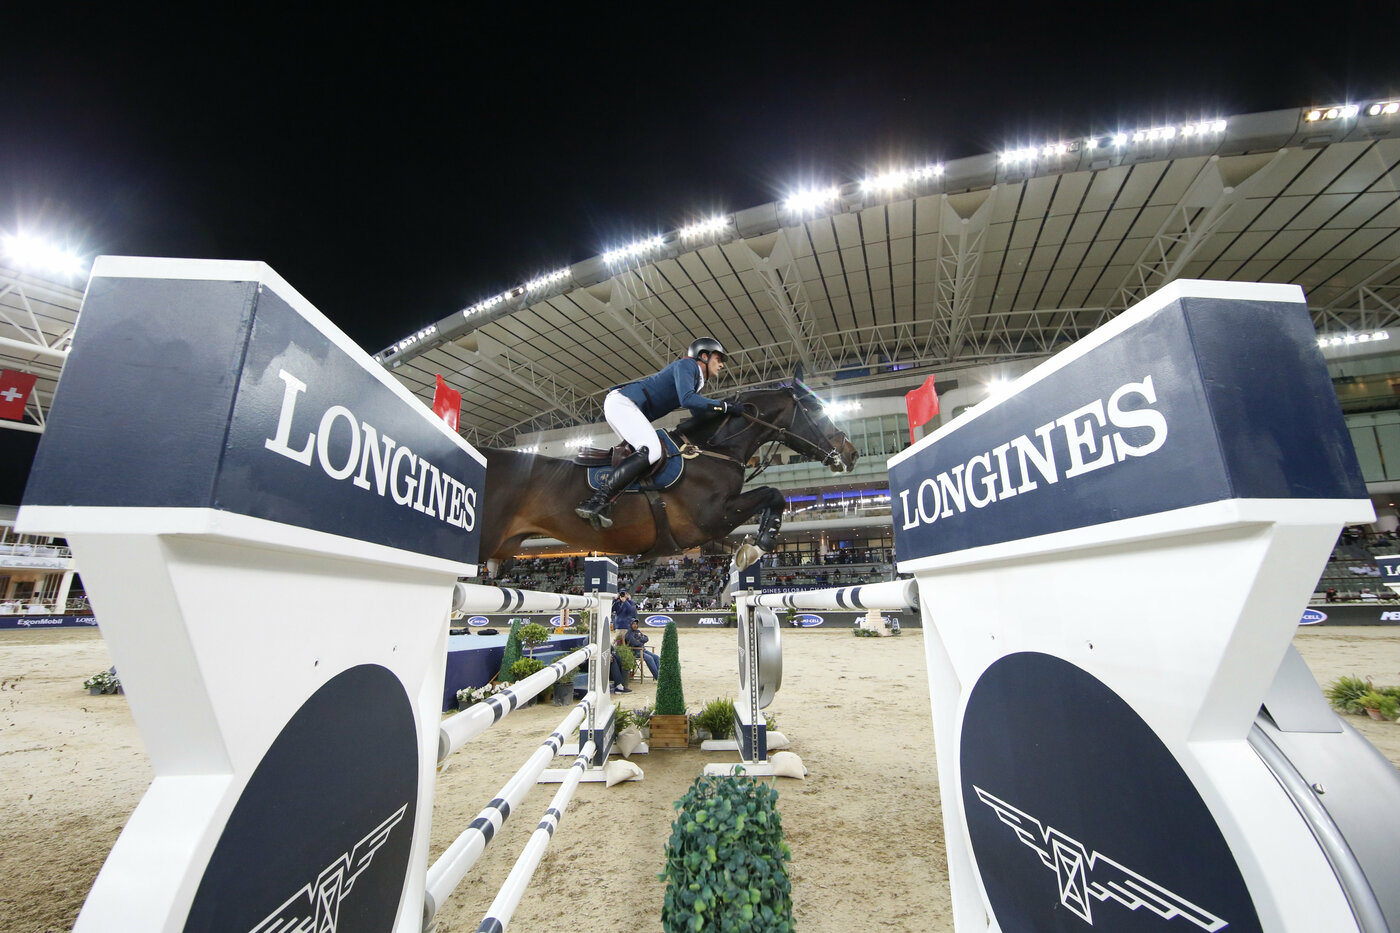 Longines Show Jumping Event: Launch of the brand new season of the Longines Global Champions Tour in Doha 3